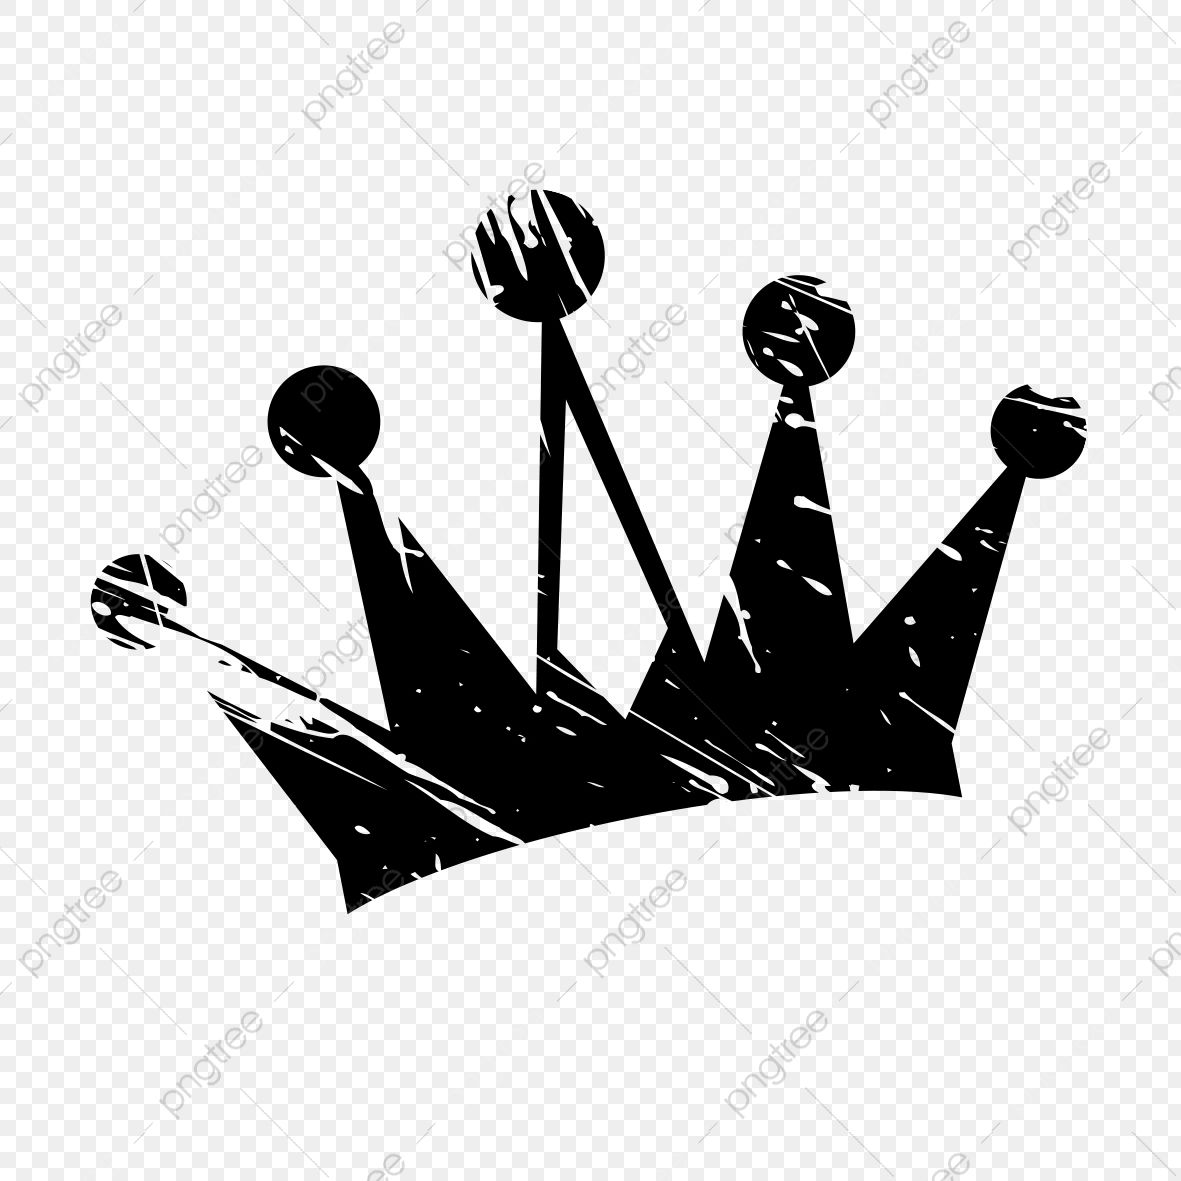 Black Crown Crown Clipart Black Crown Png Transparent Clipart Image And Psd File For Free Download Crown Png Crown Drawing Crown Logo